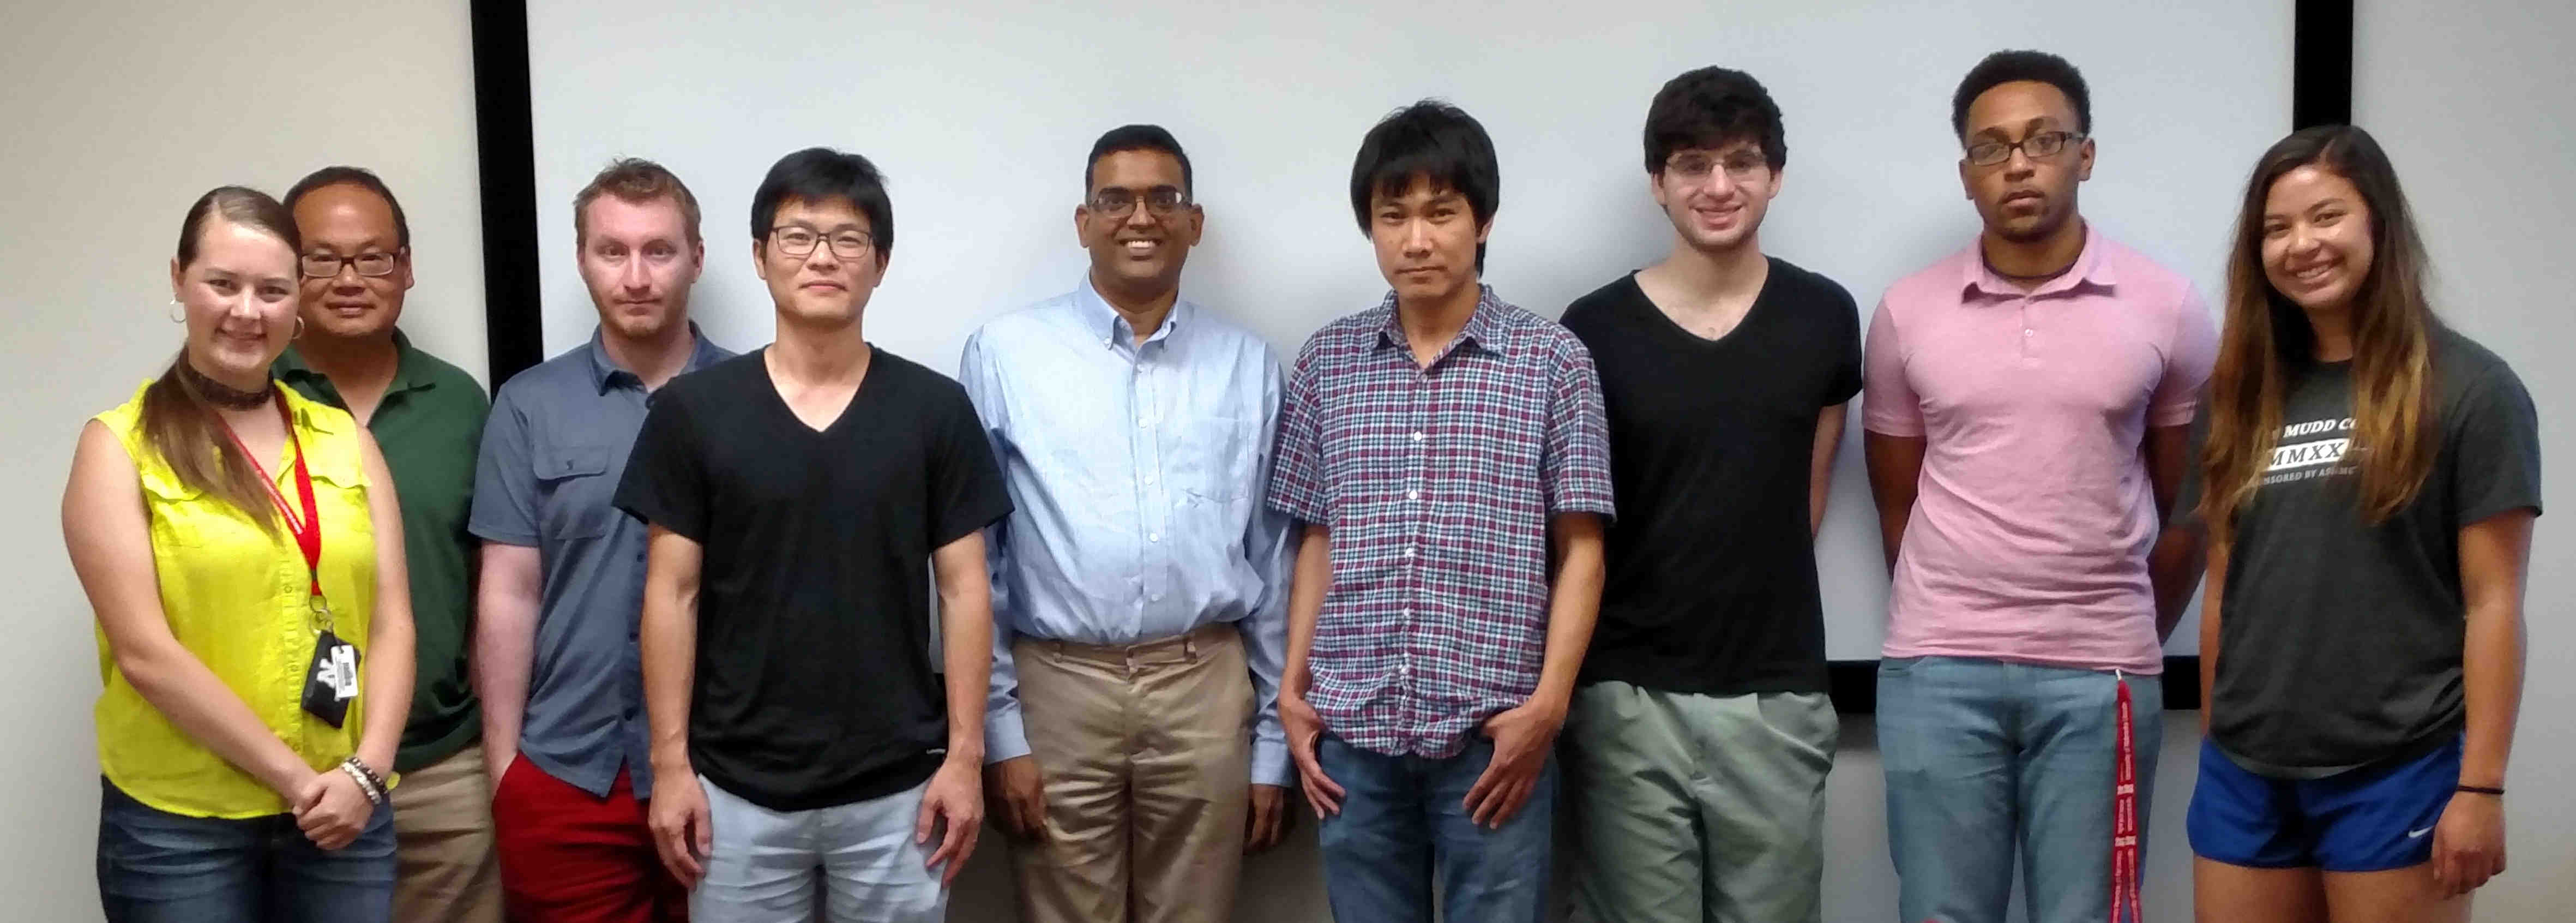 The Summer Research Program students with their faculty advisors.